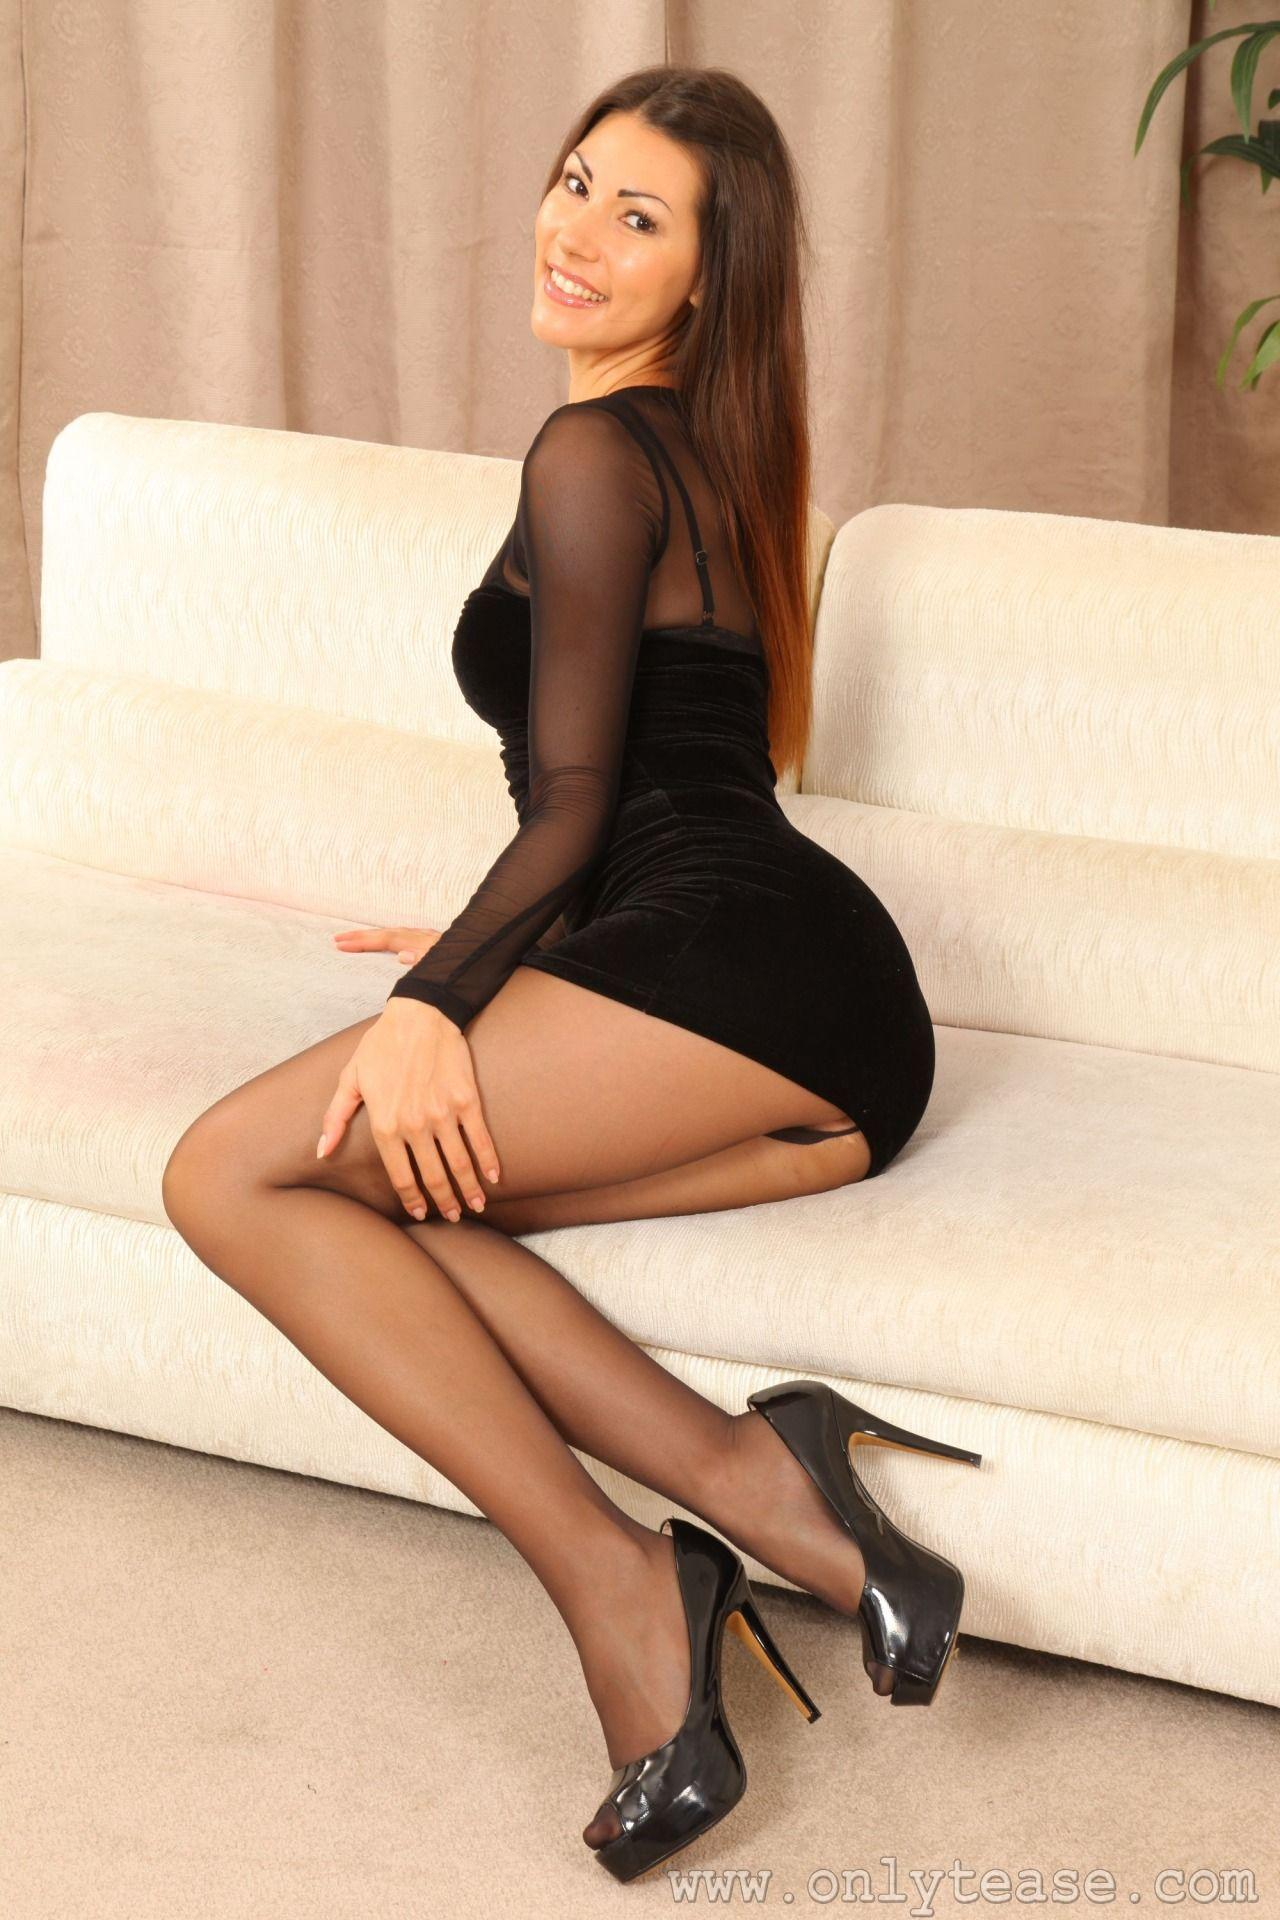 Pantyhose black skirt